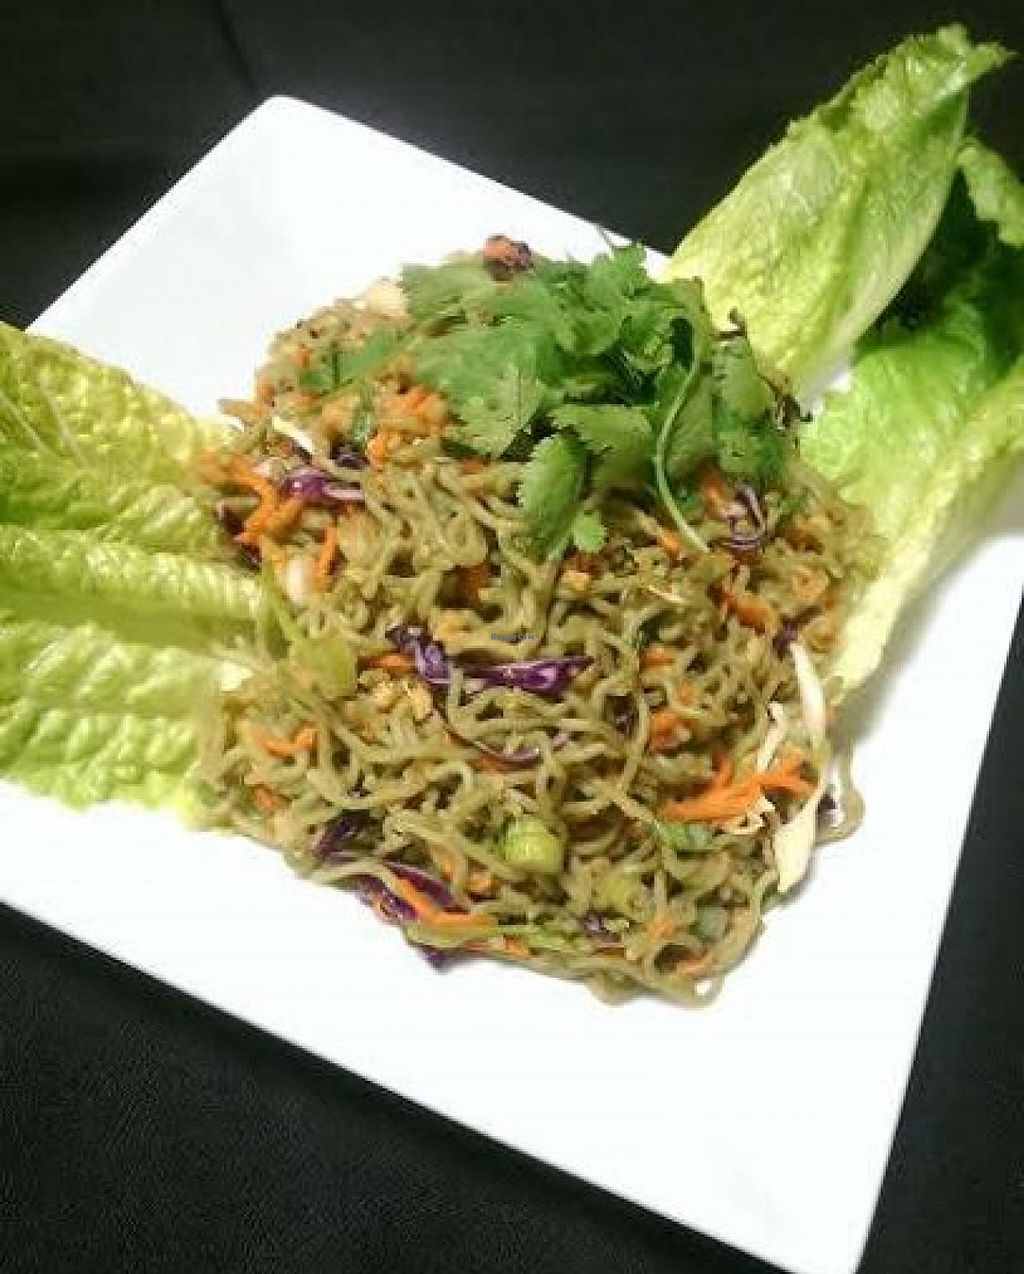 """Photo of Chef's Choice Noodle Bar  by <a href=""""/members/profile/community"""">community</a> <br/>spinach noodles <br/> September 26, 2014  - <a href='/contact/abuse/image/48485/81107'>Report</a>"""